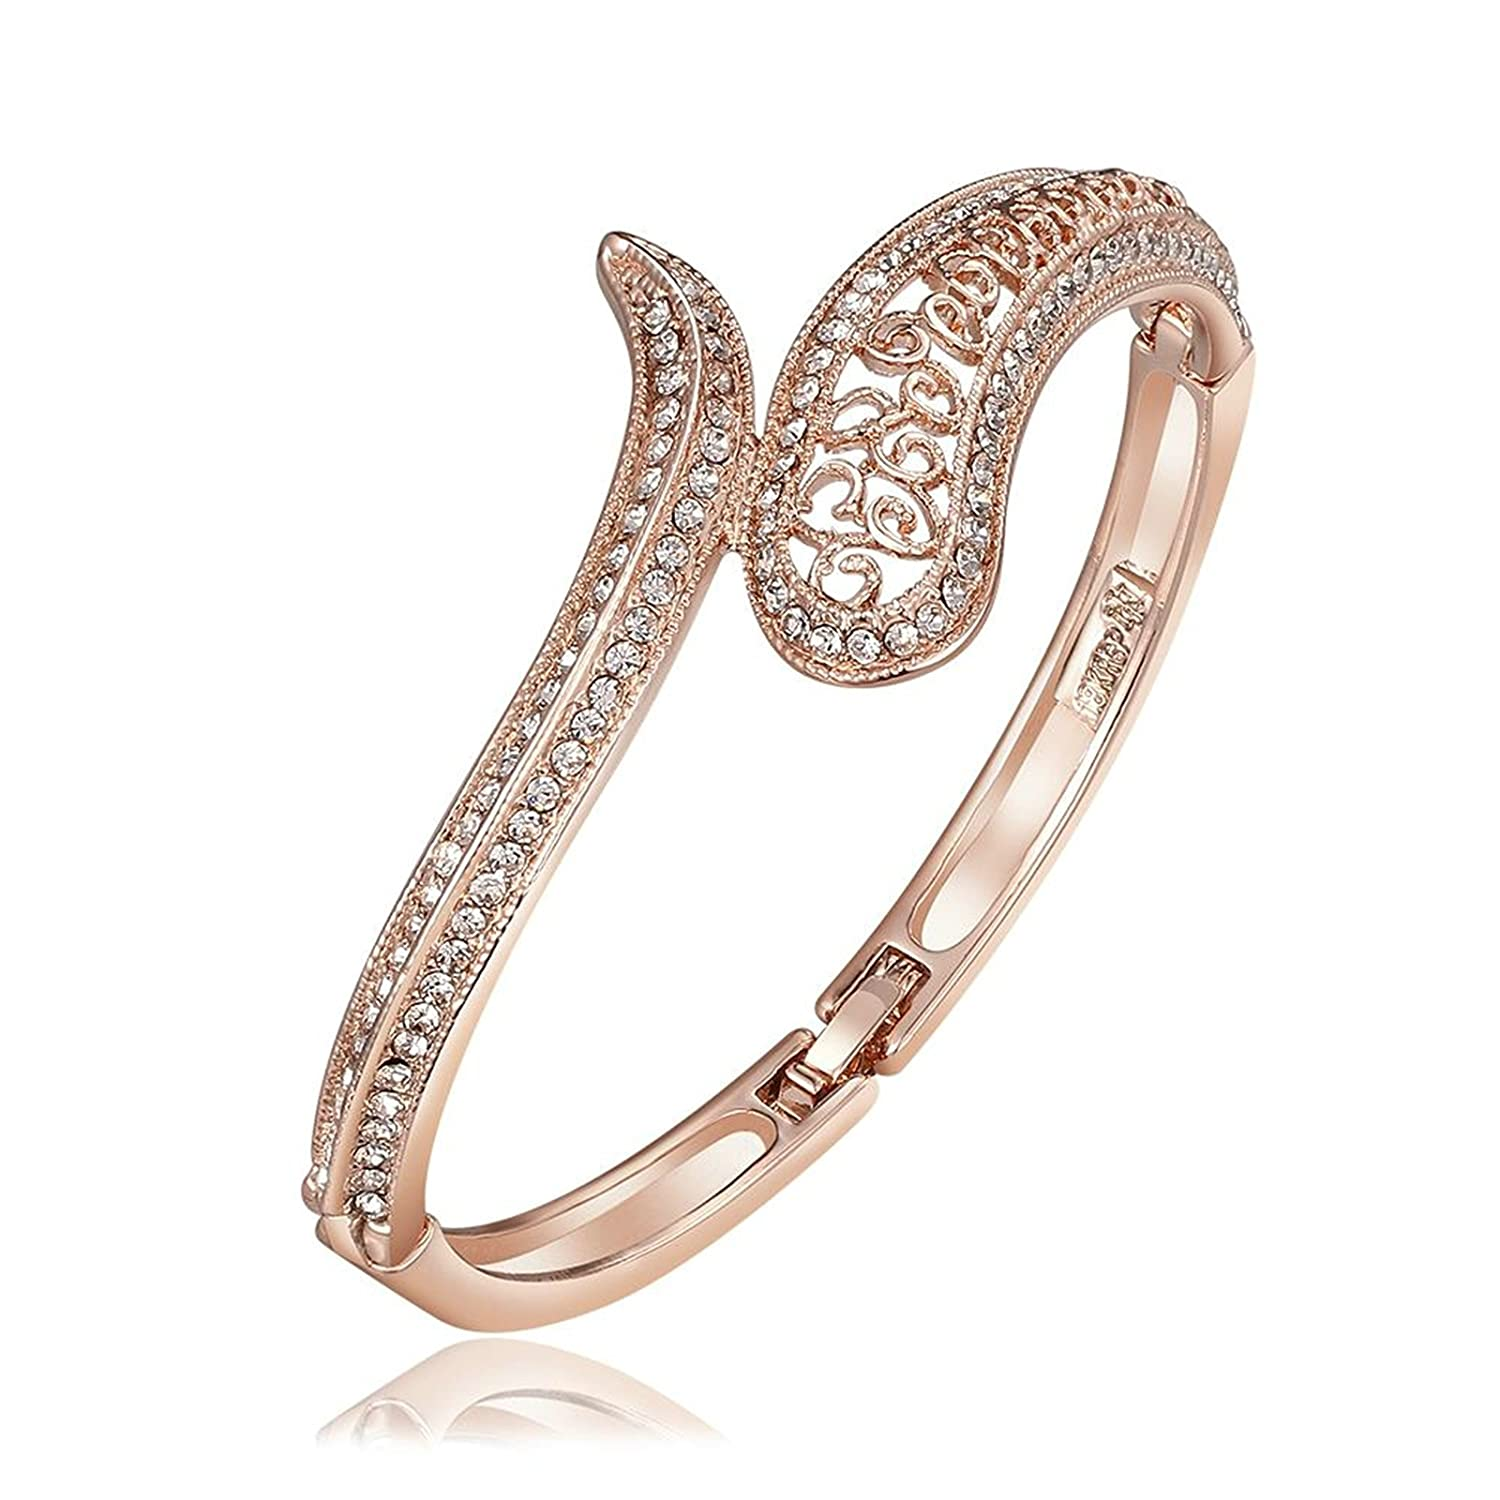 Aokarry Bangle Bracelet-Gold Plated Womens Charm Bracelet Bangle Cubic Zirconia Hollow Design Rose Gold